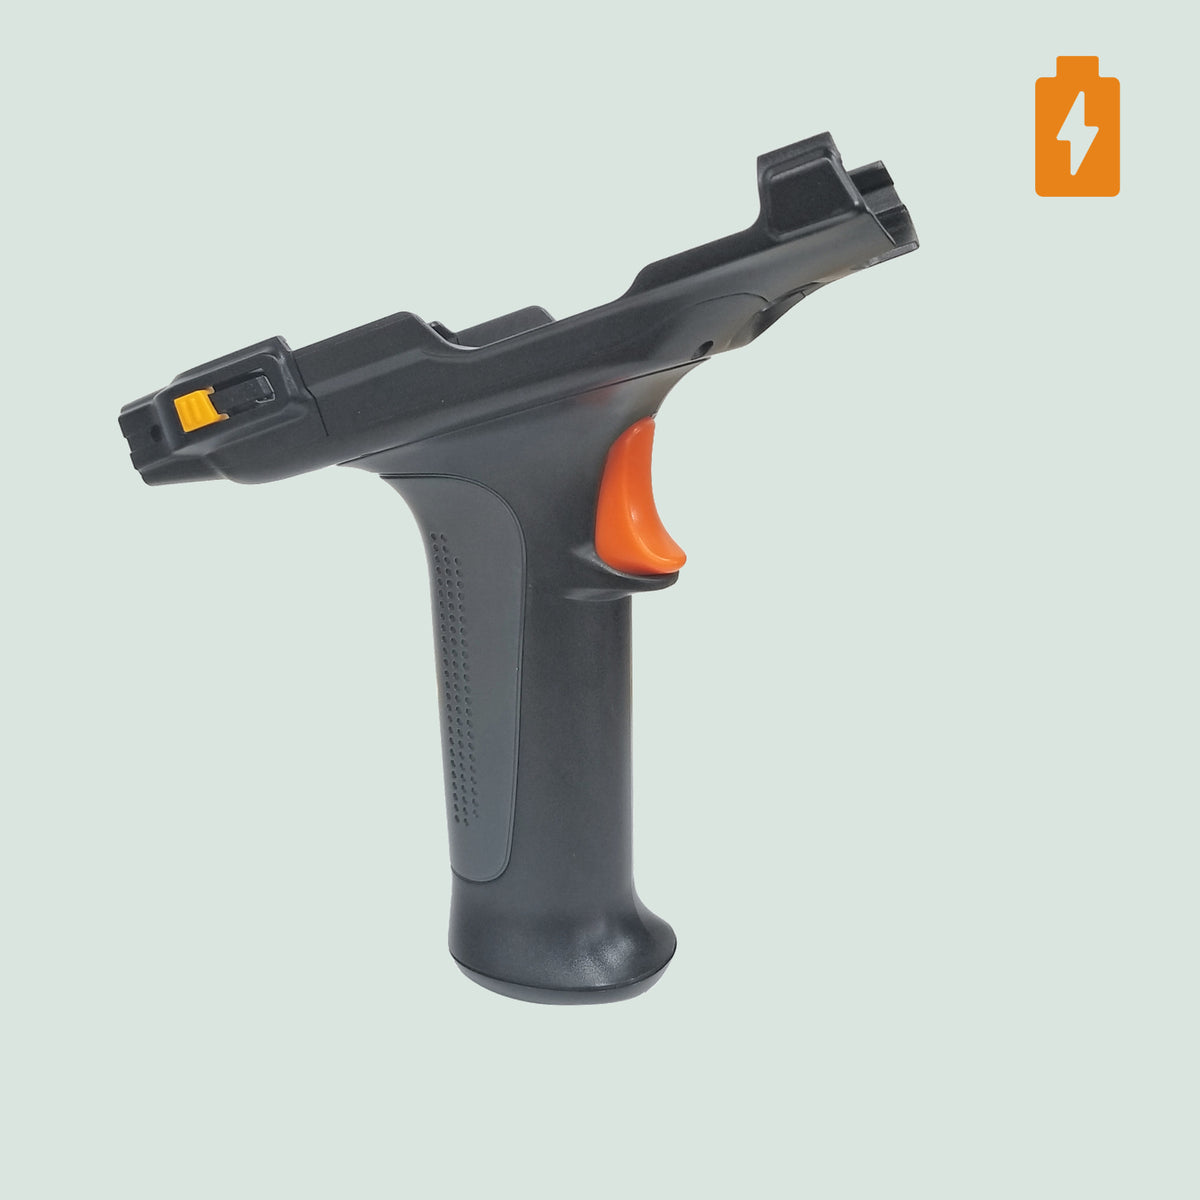 inFlow Smart Scanner Pistol Grip with Battery - PREORDER SHIPS OCT 2019